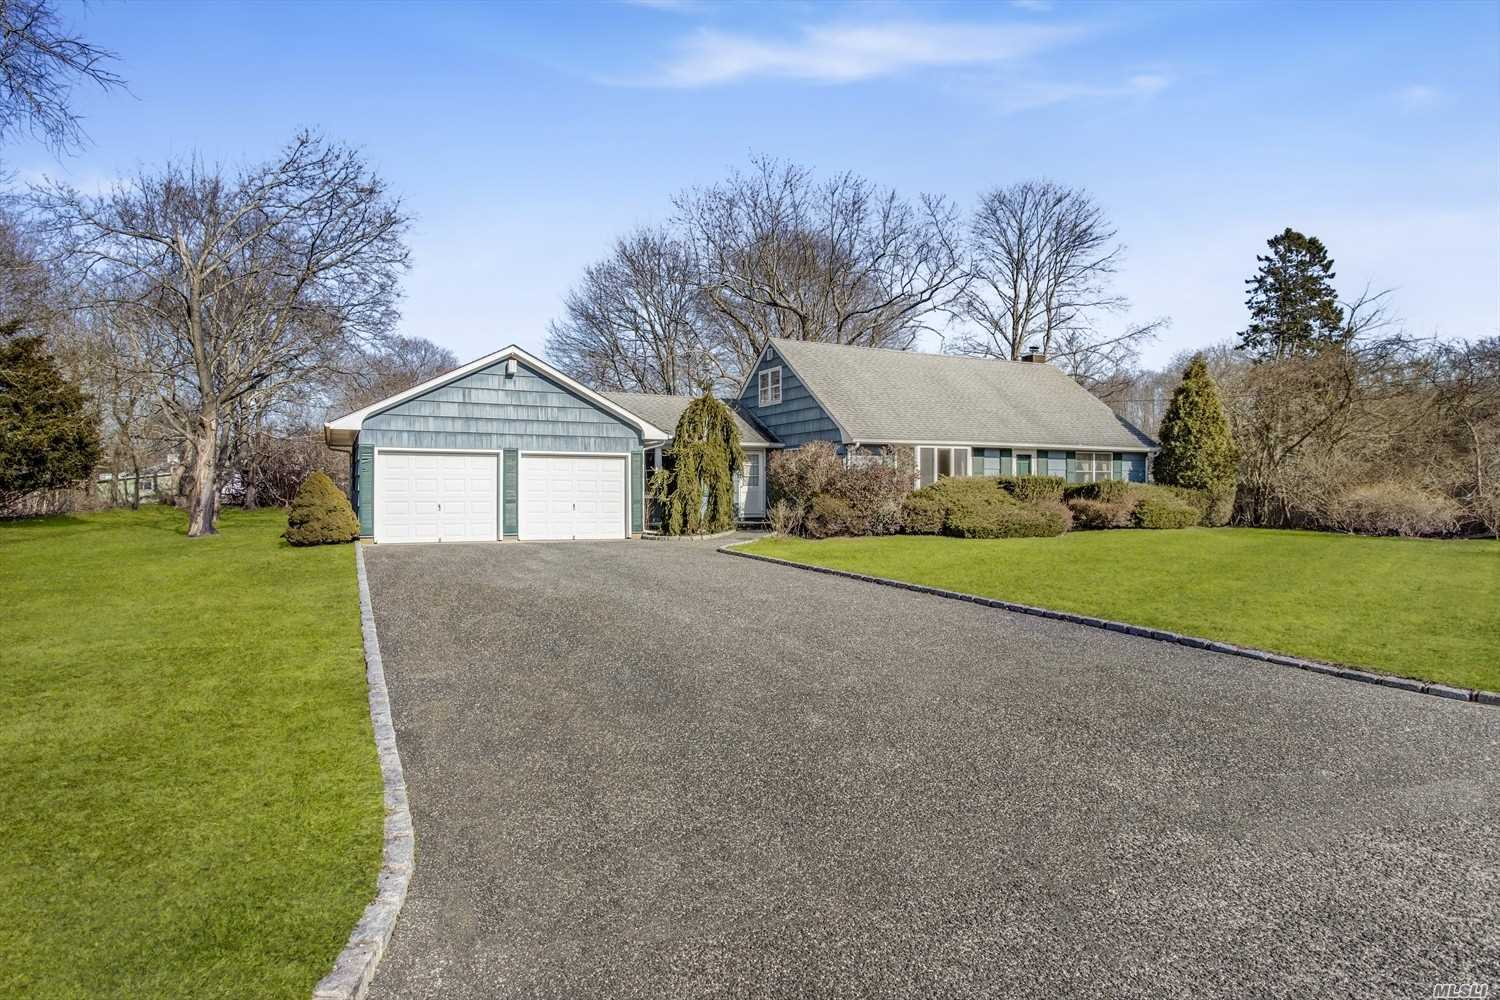 A Large Cape Cod On A Quiet Country Dead End Block, so close to the charming town it offers a lifestyle! This Home Has Many Upgrades and Beautifully Kept! Wood Floors Throughout, Quality Upgraded Custom Kitchen, Cac, Attached 2 Car Garage, and more. Lovely Yard With Ample Space to make your oasis. Room For Pool. A home not to be missed in your search! Taxes are being Grieved!! *Beautifully maintained by original owner!